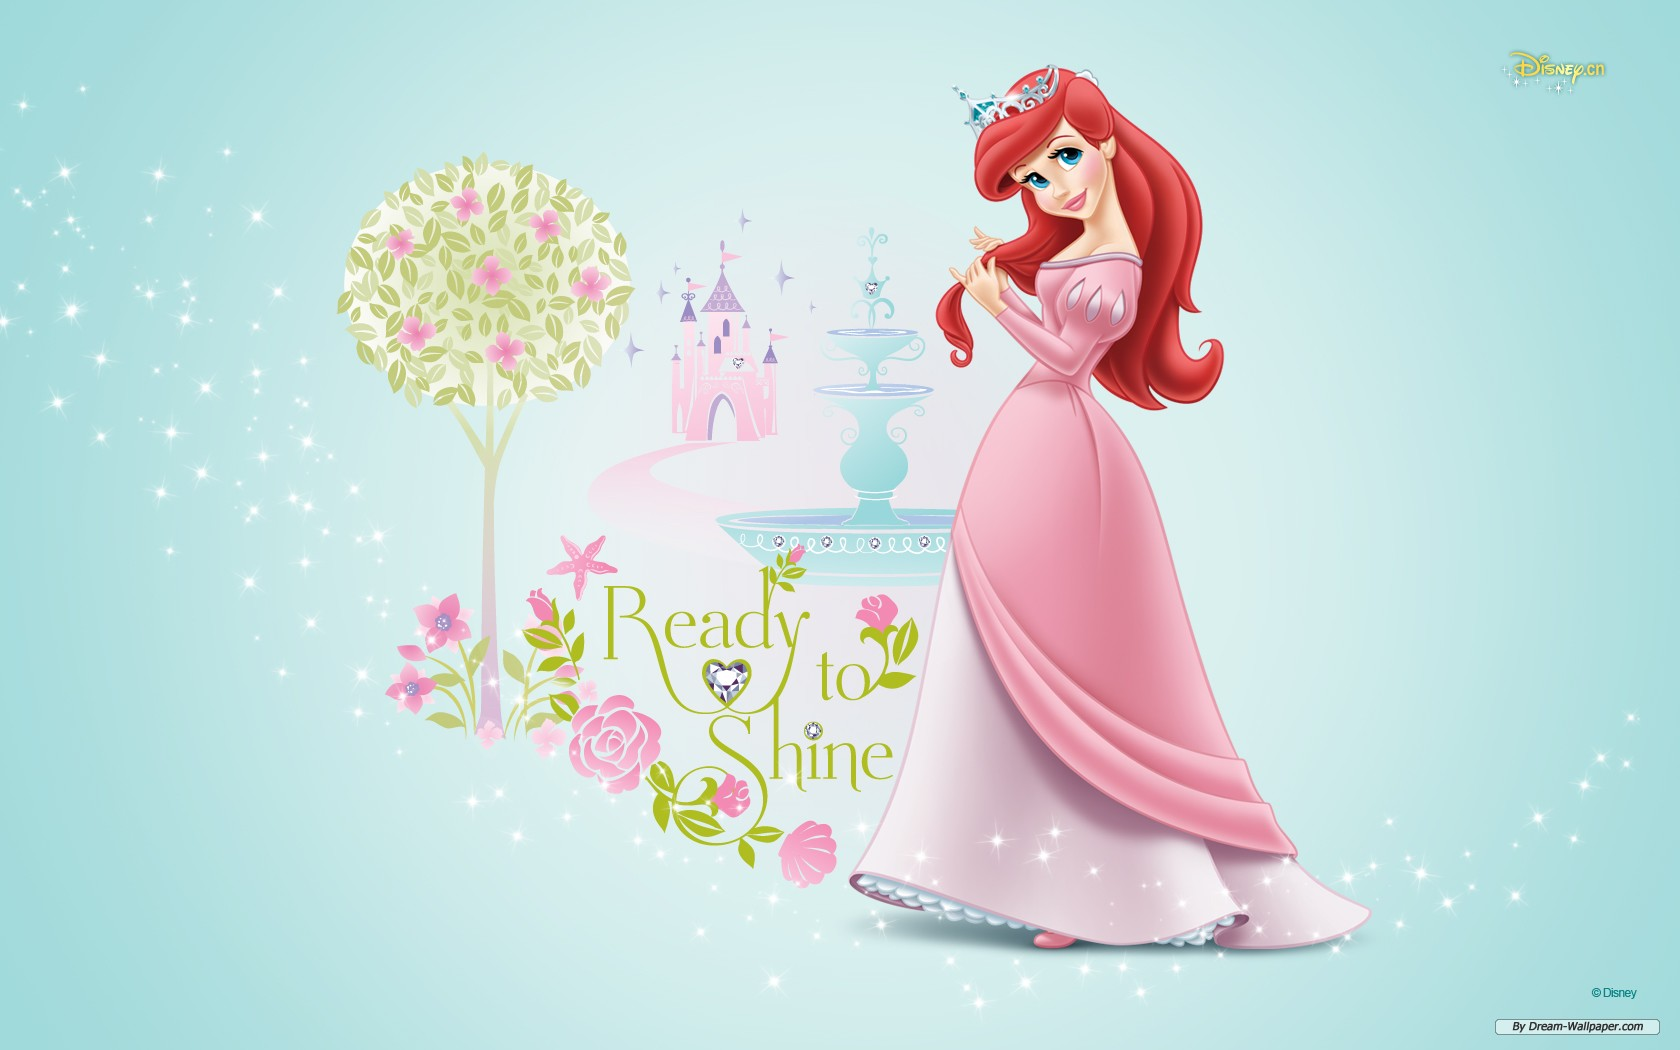 Disney Princess Ariel Pink 1680x1050